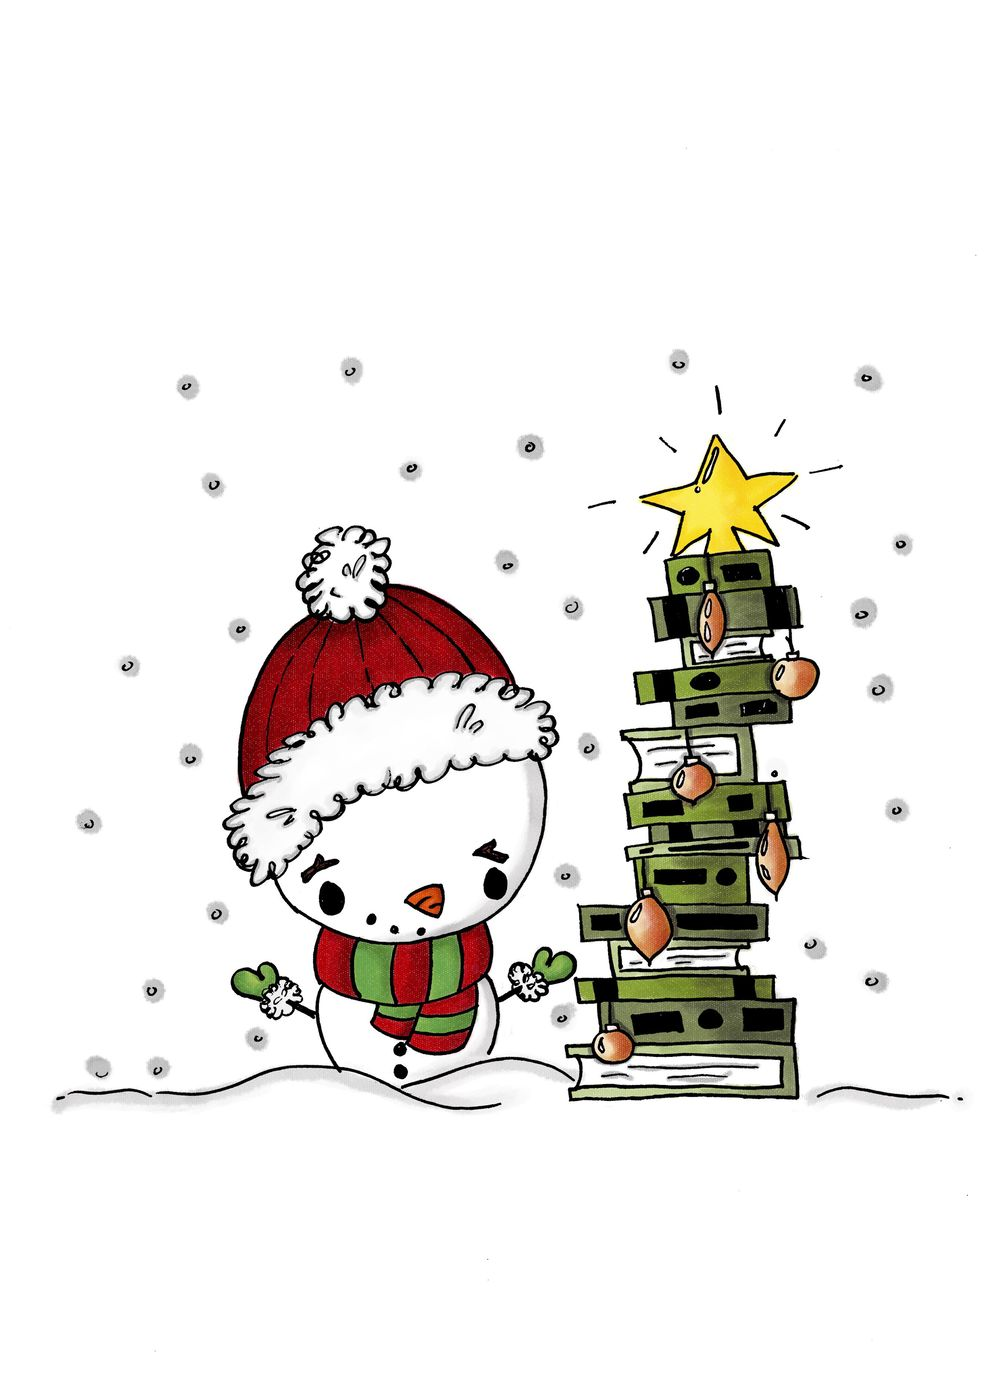 Merry Bookmas! - image 2 - student project